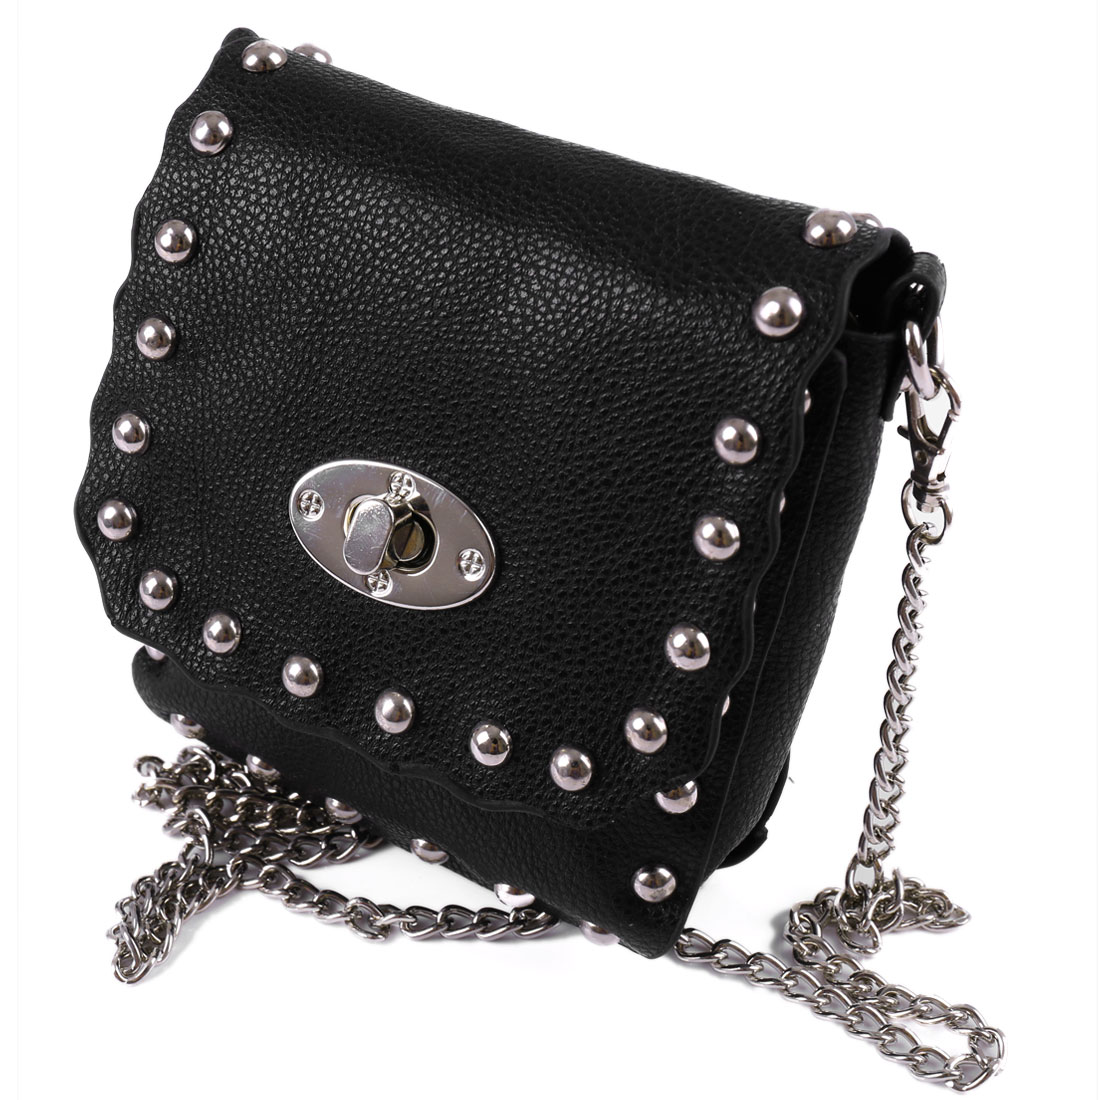 Woman Stud Decor Litchi Faux Leather Turn Lock Clasp Crossbody Bag Handbag Black